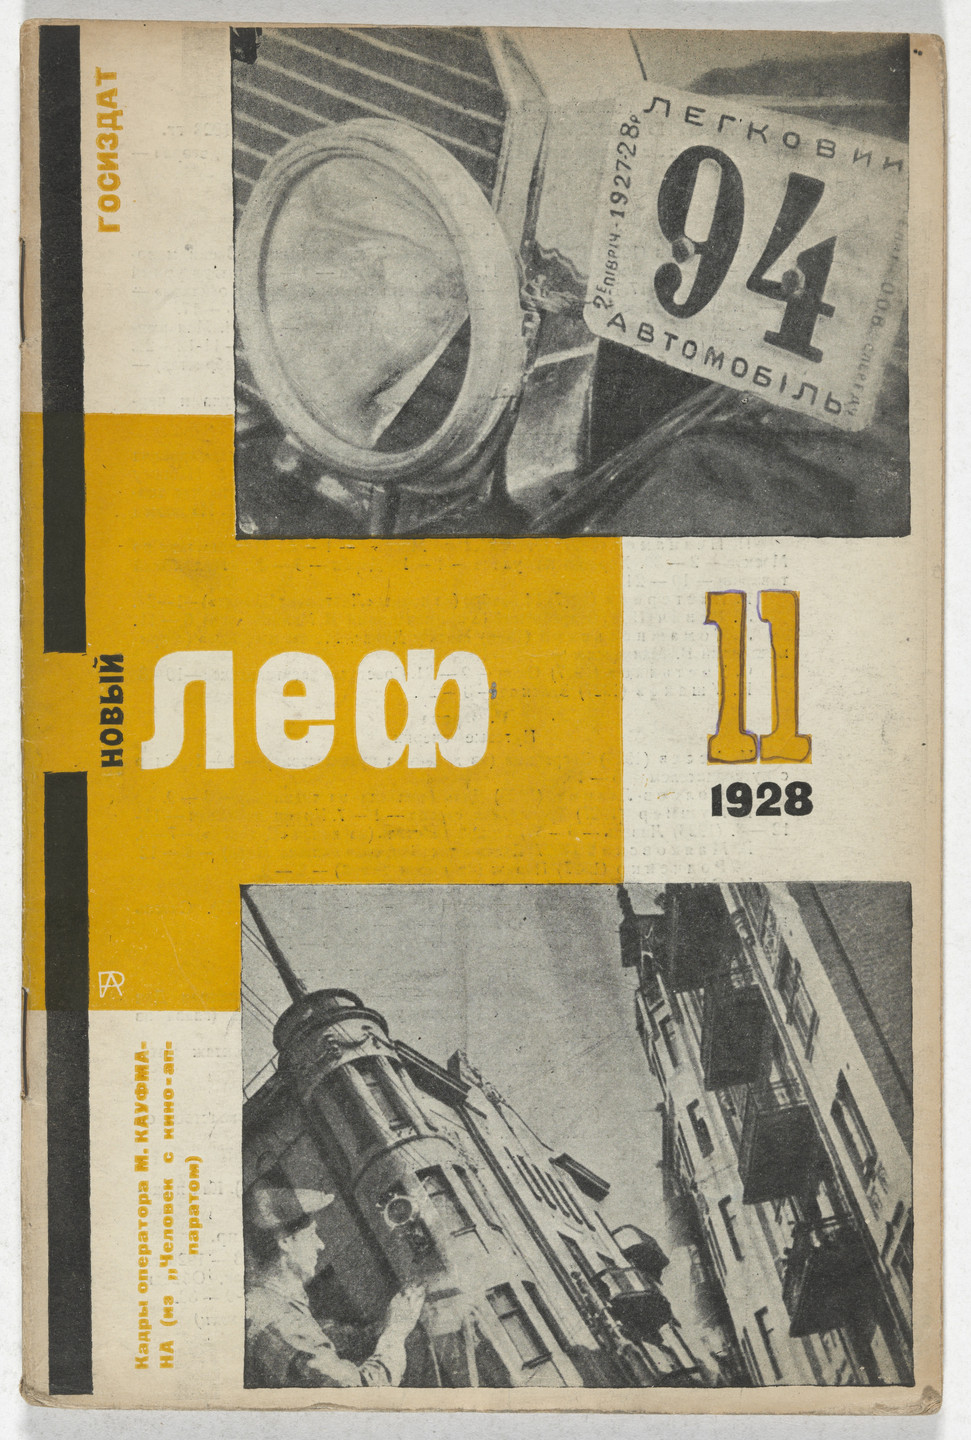 Aleksandr Rodchenko. Novyi LEF. Zhurnal levogo fronta iskusstv (New LEF: Journal of the Left Front of the Arts), no. 11. 1928